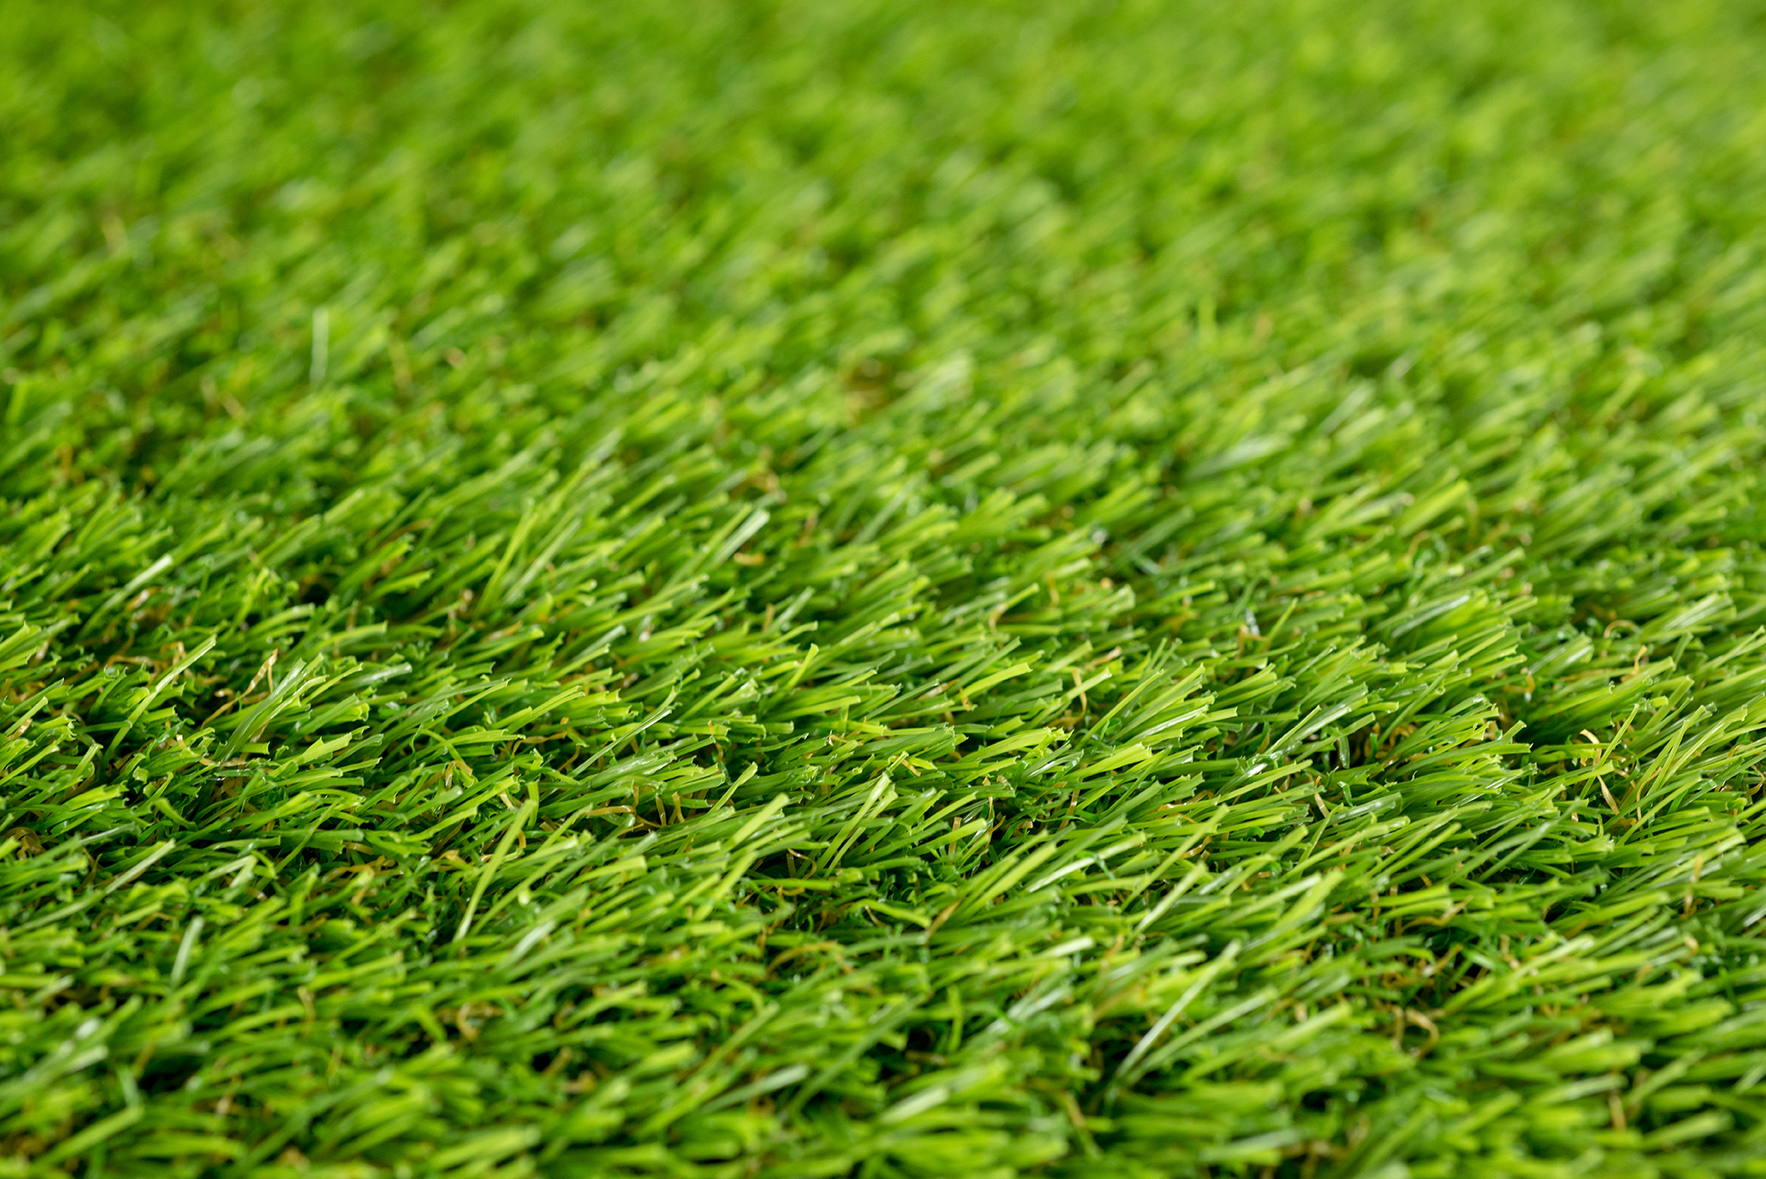 Why Artificial Grass Market On a verge to Create Astonishing Growth Cycle?